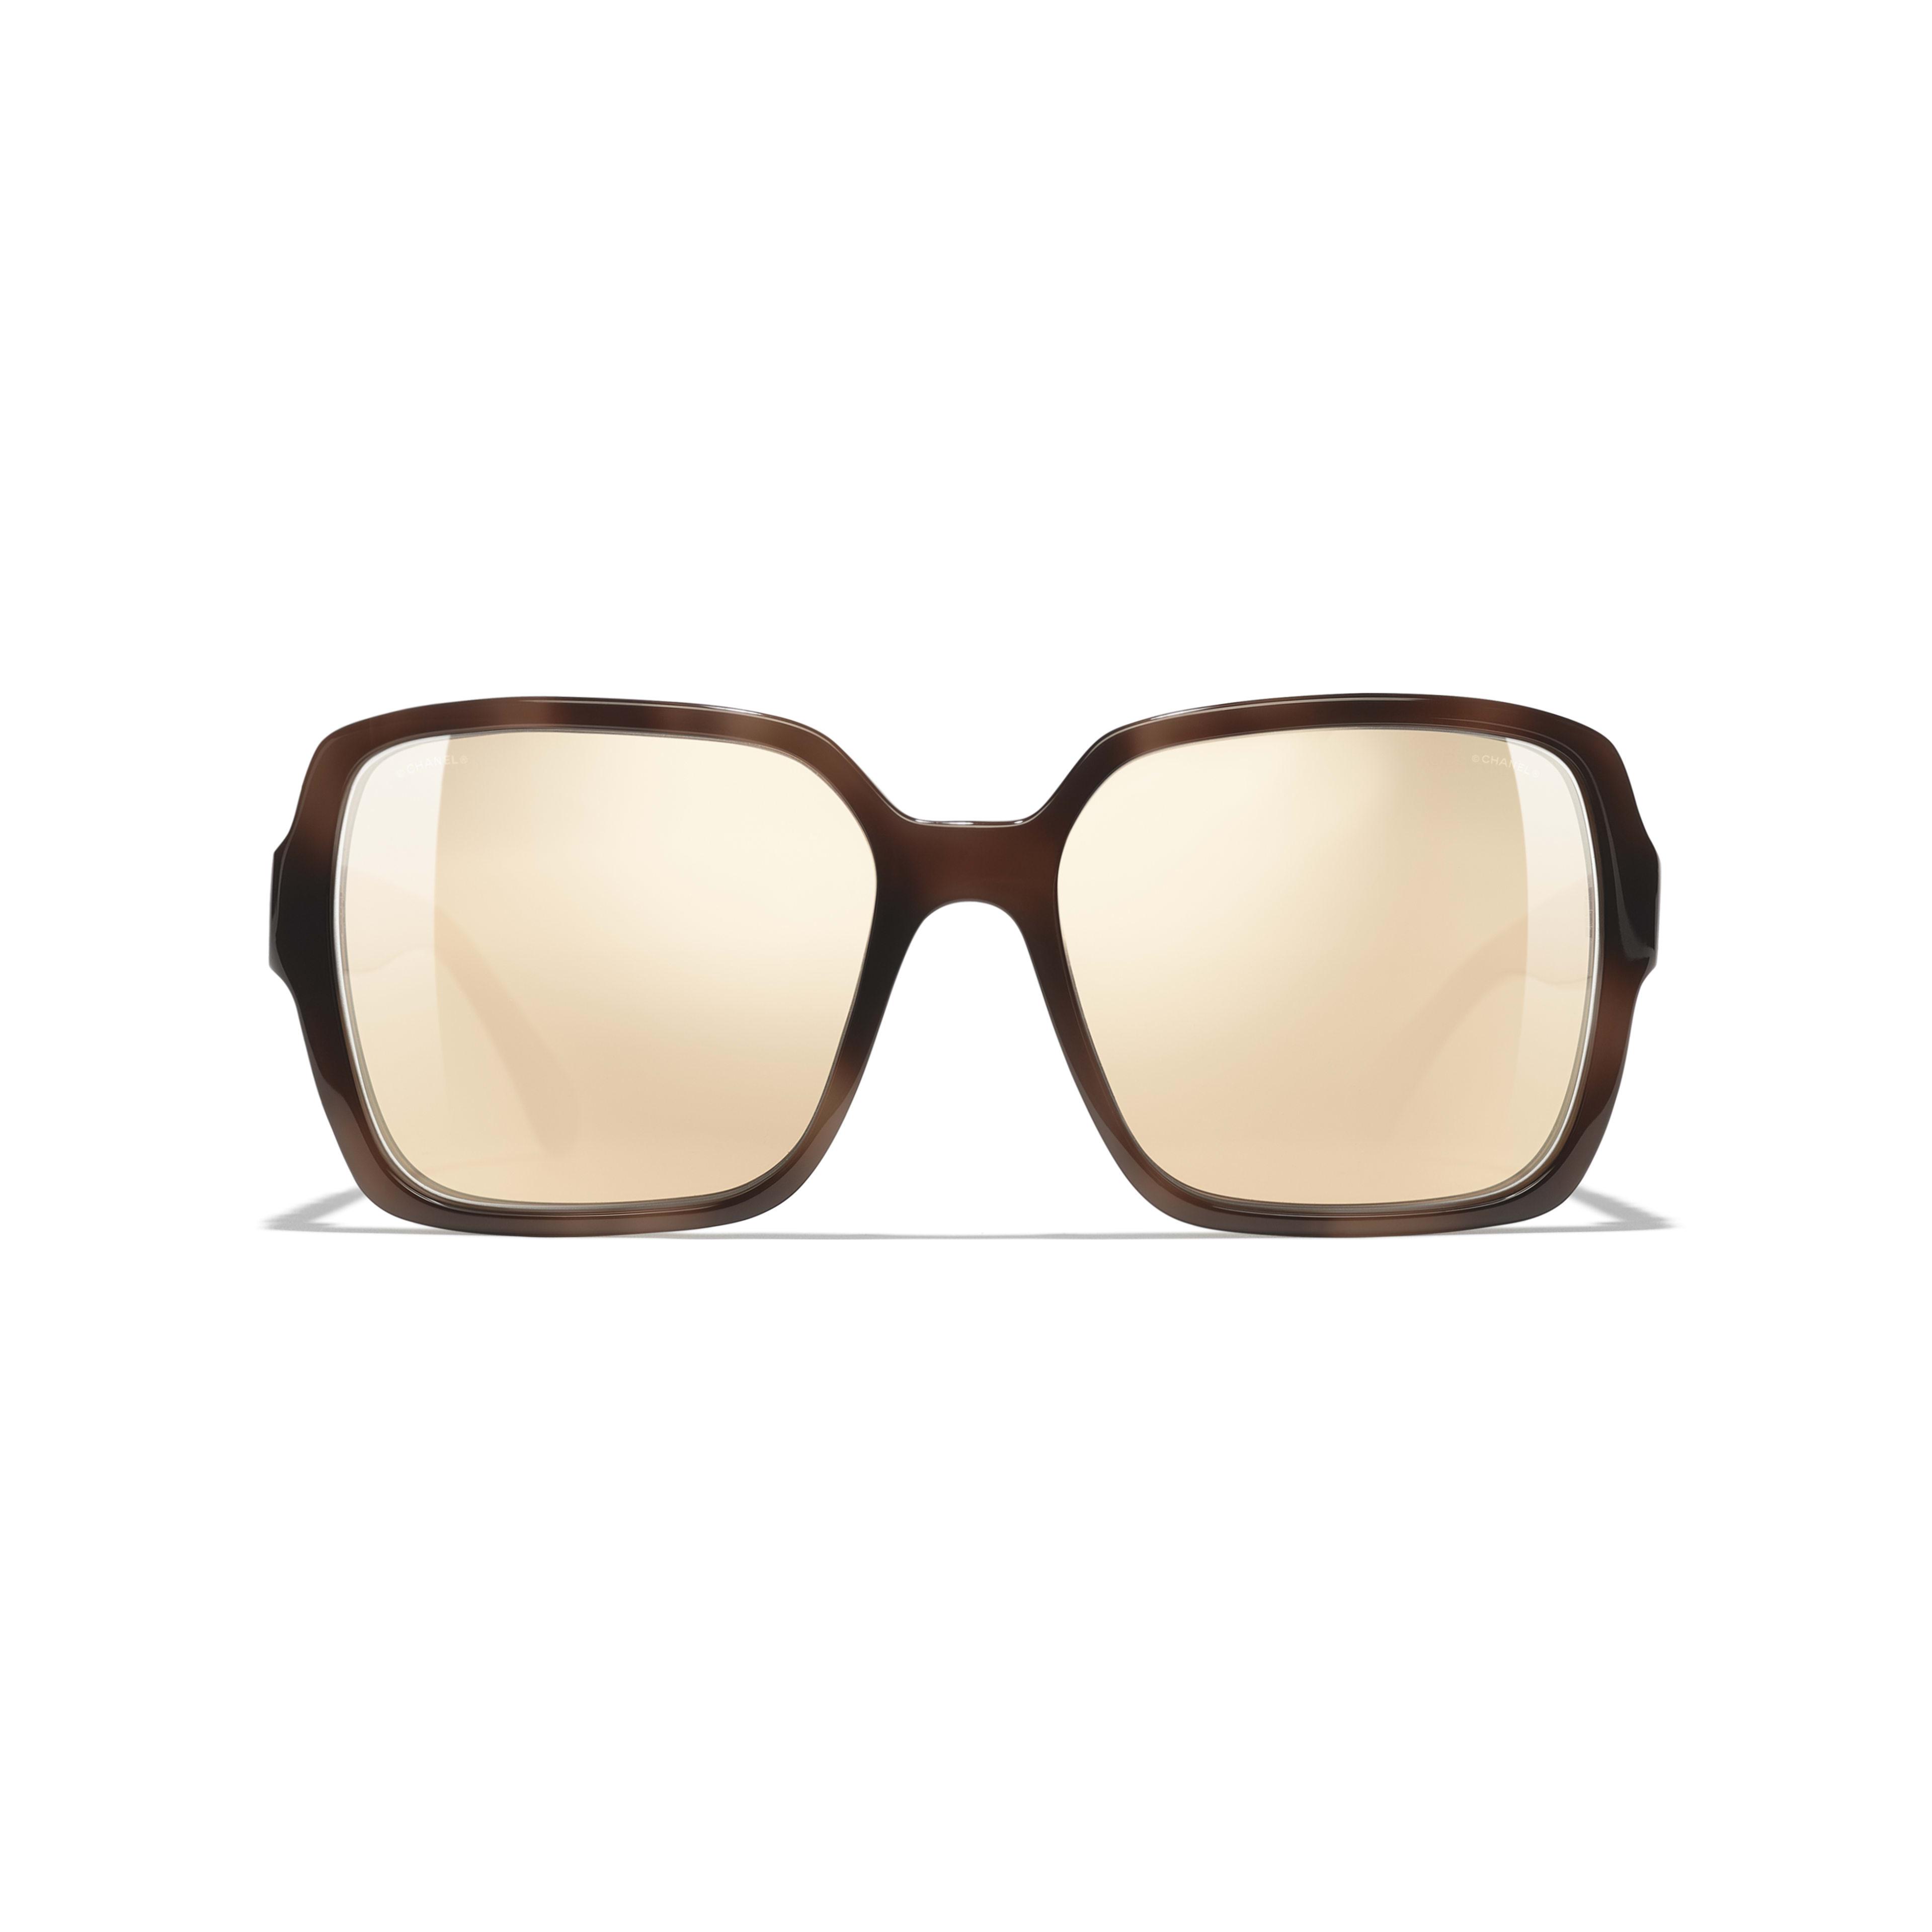 Square Sunglasses - Brown - Acetate - Alternative view - see full sized version